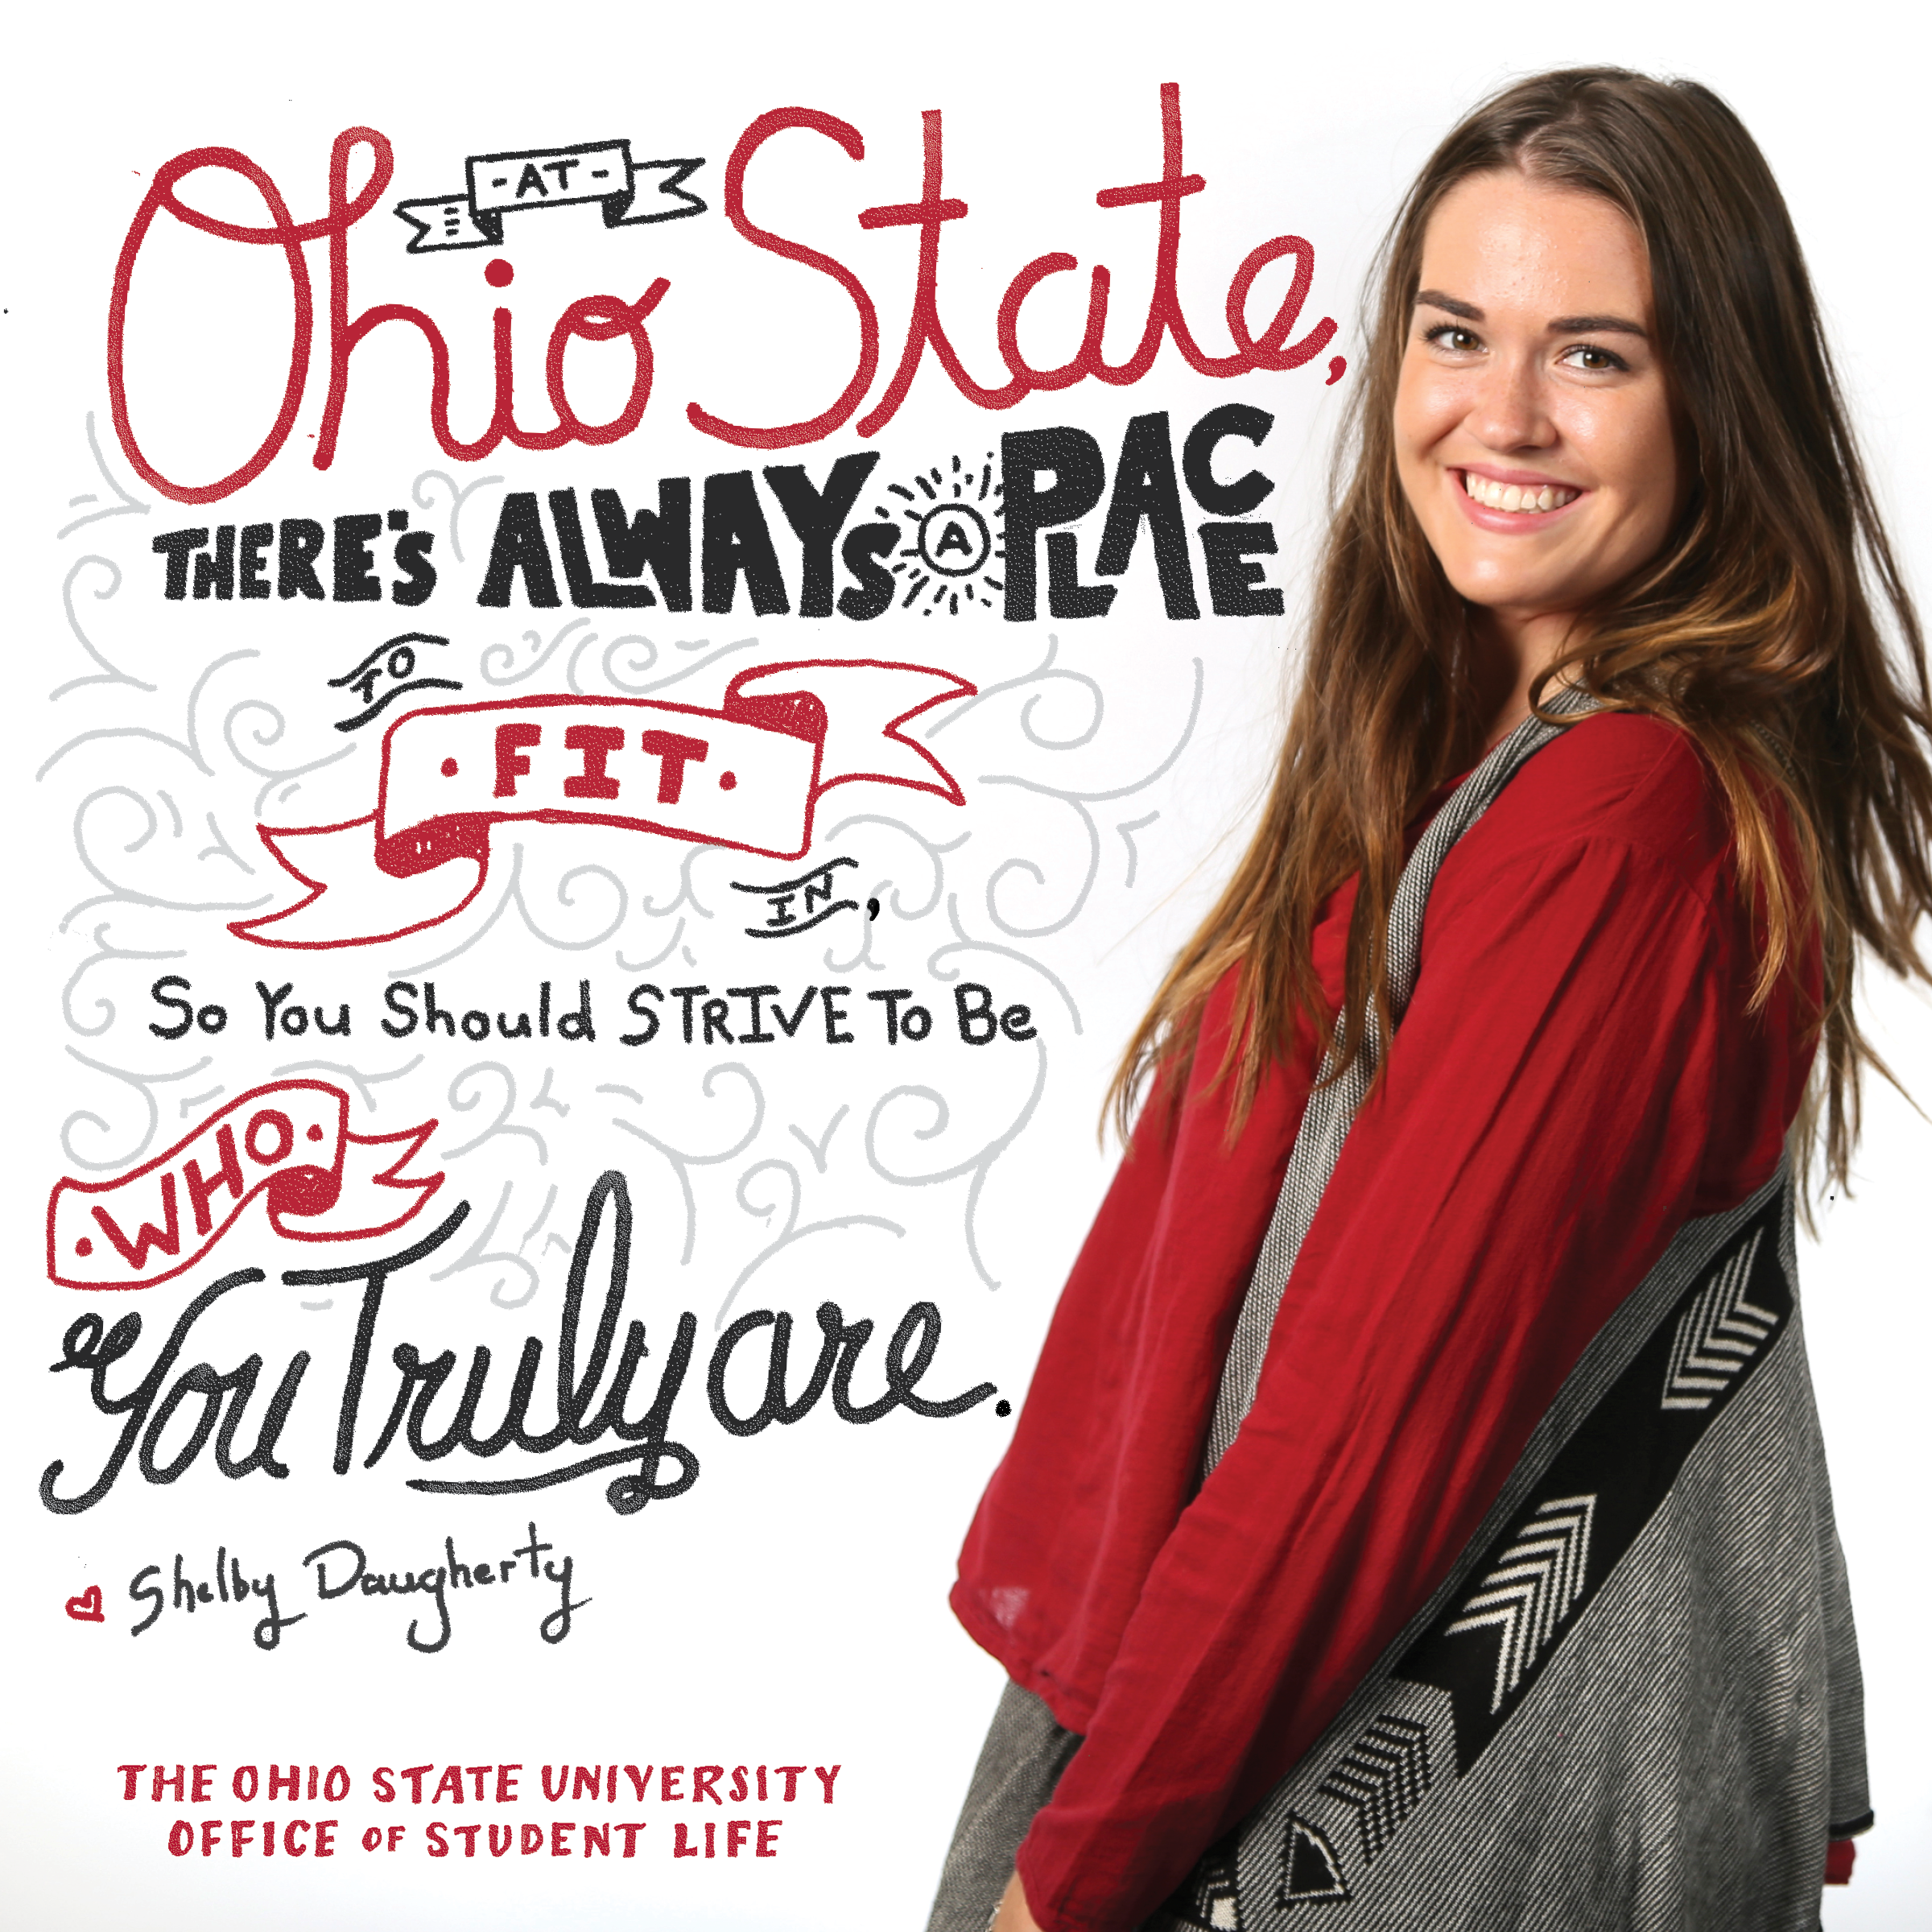 Ohio state admission essay prompt